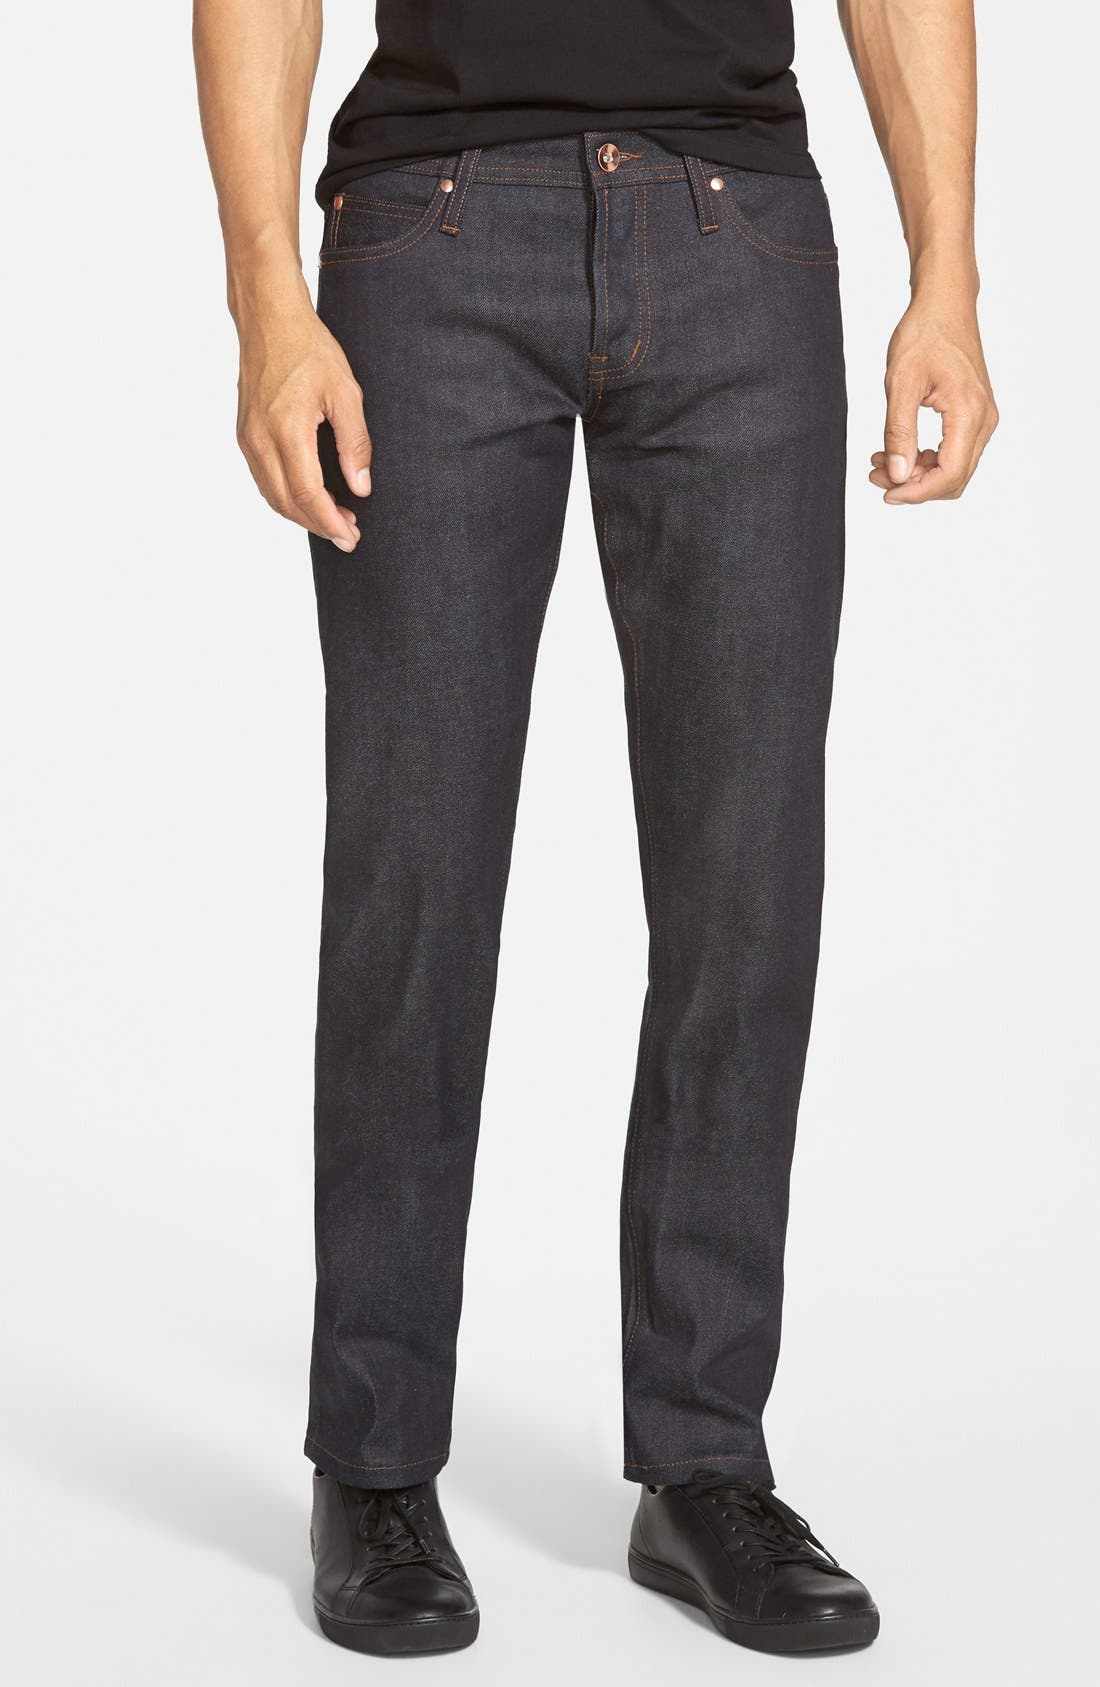 'UB122' Skinny Fit Raw Selvedge Jeans,                             Main thumbnail 1, color,                             401